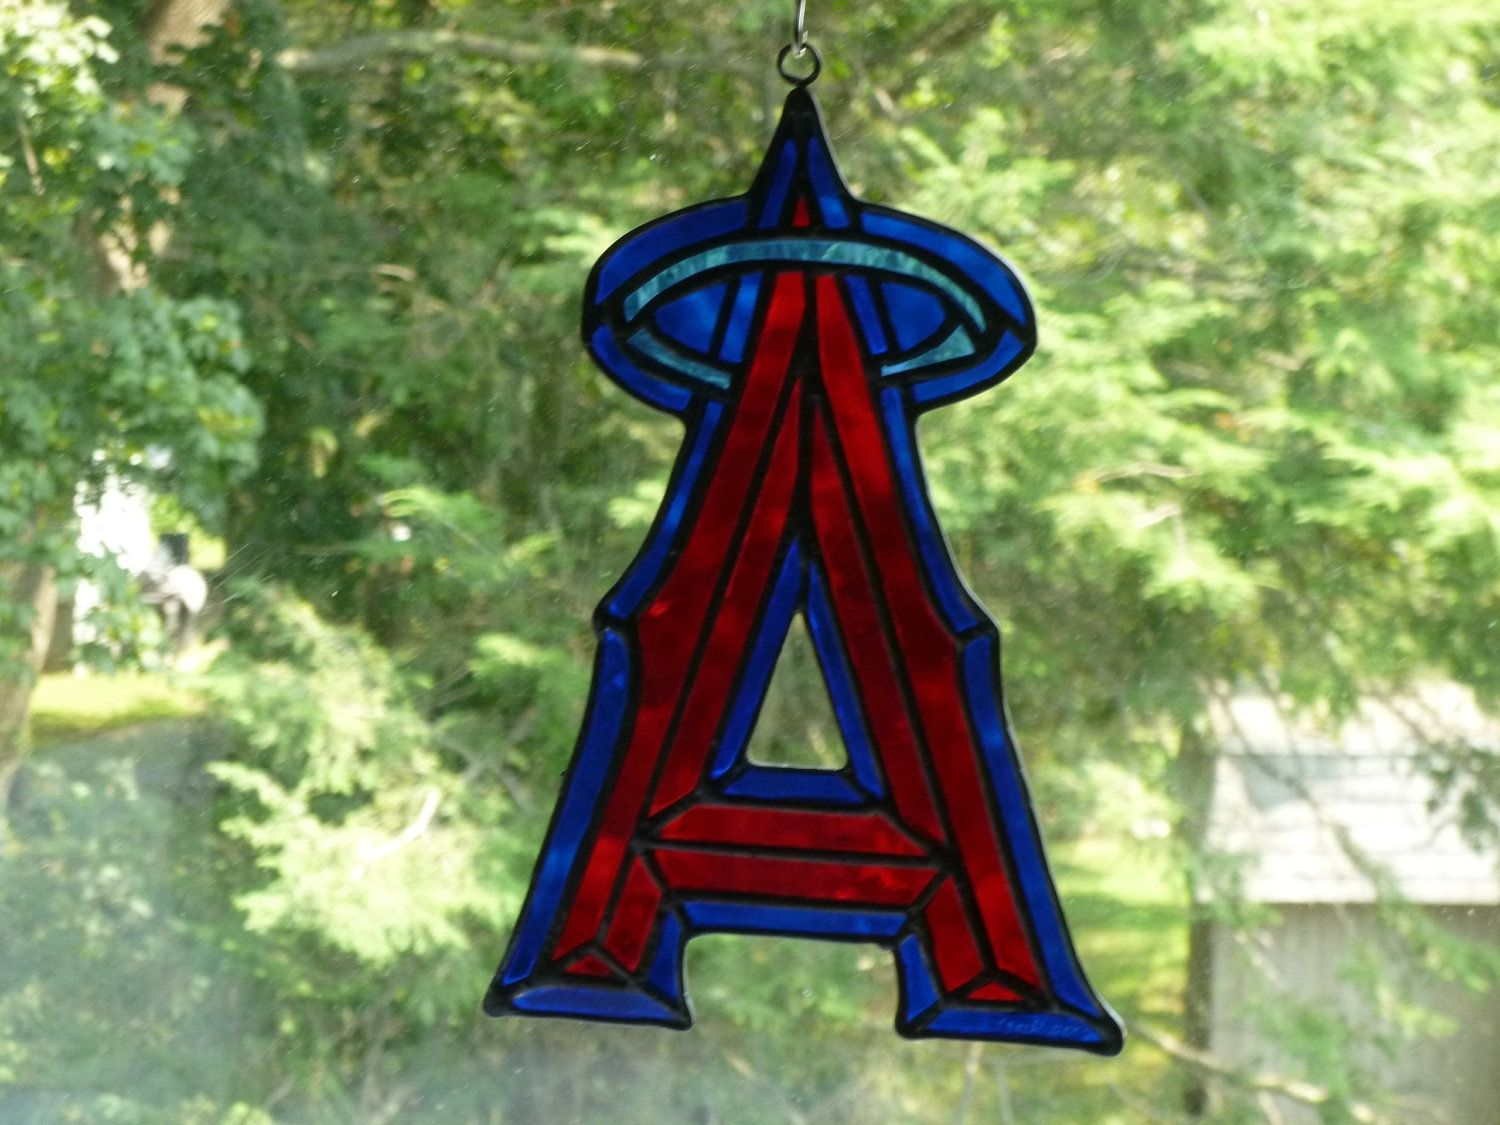 Buy A Handmade La Angels Inspired Stained Glass Light